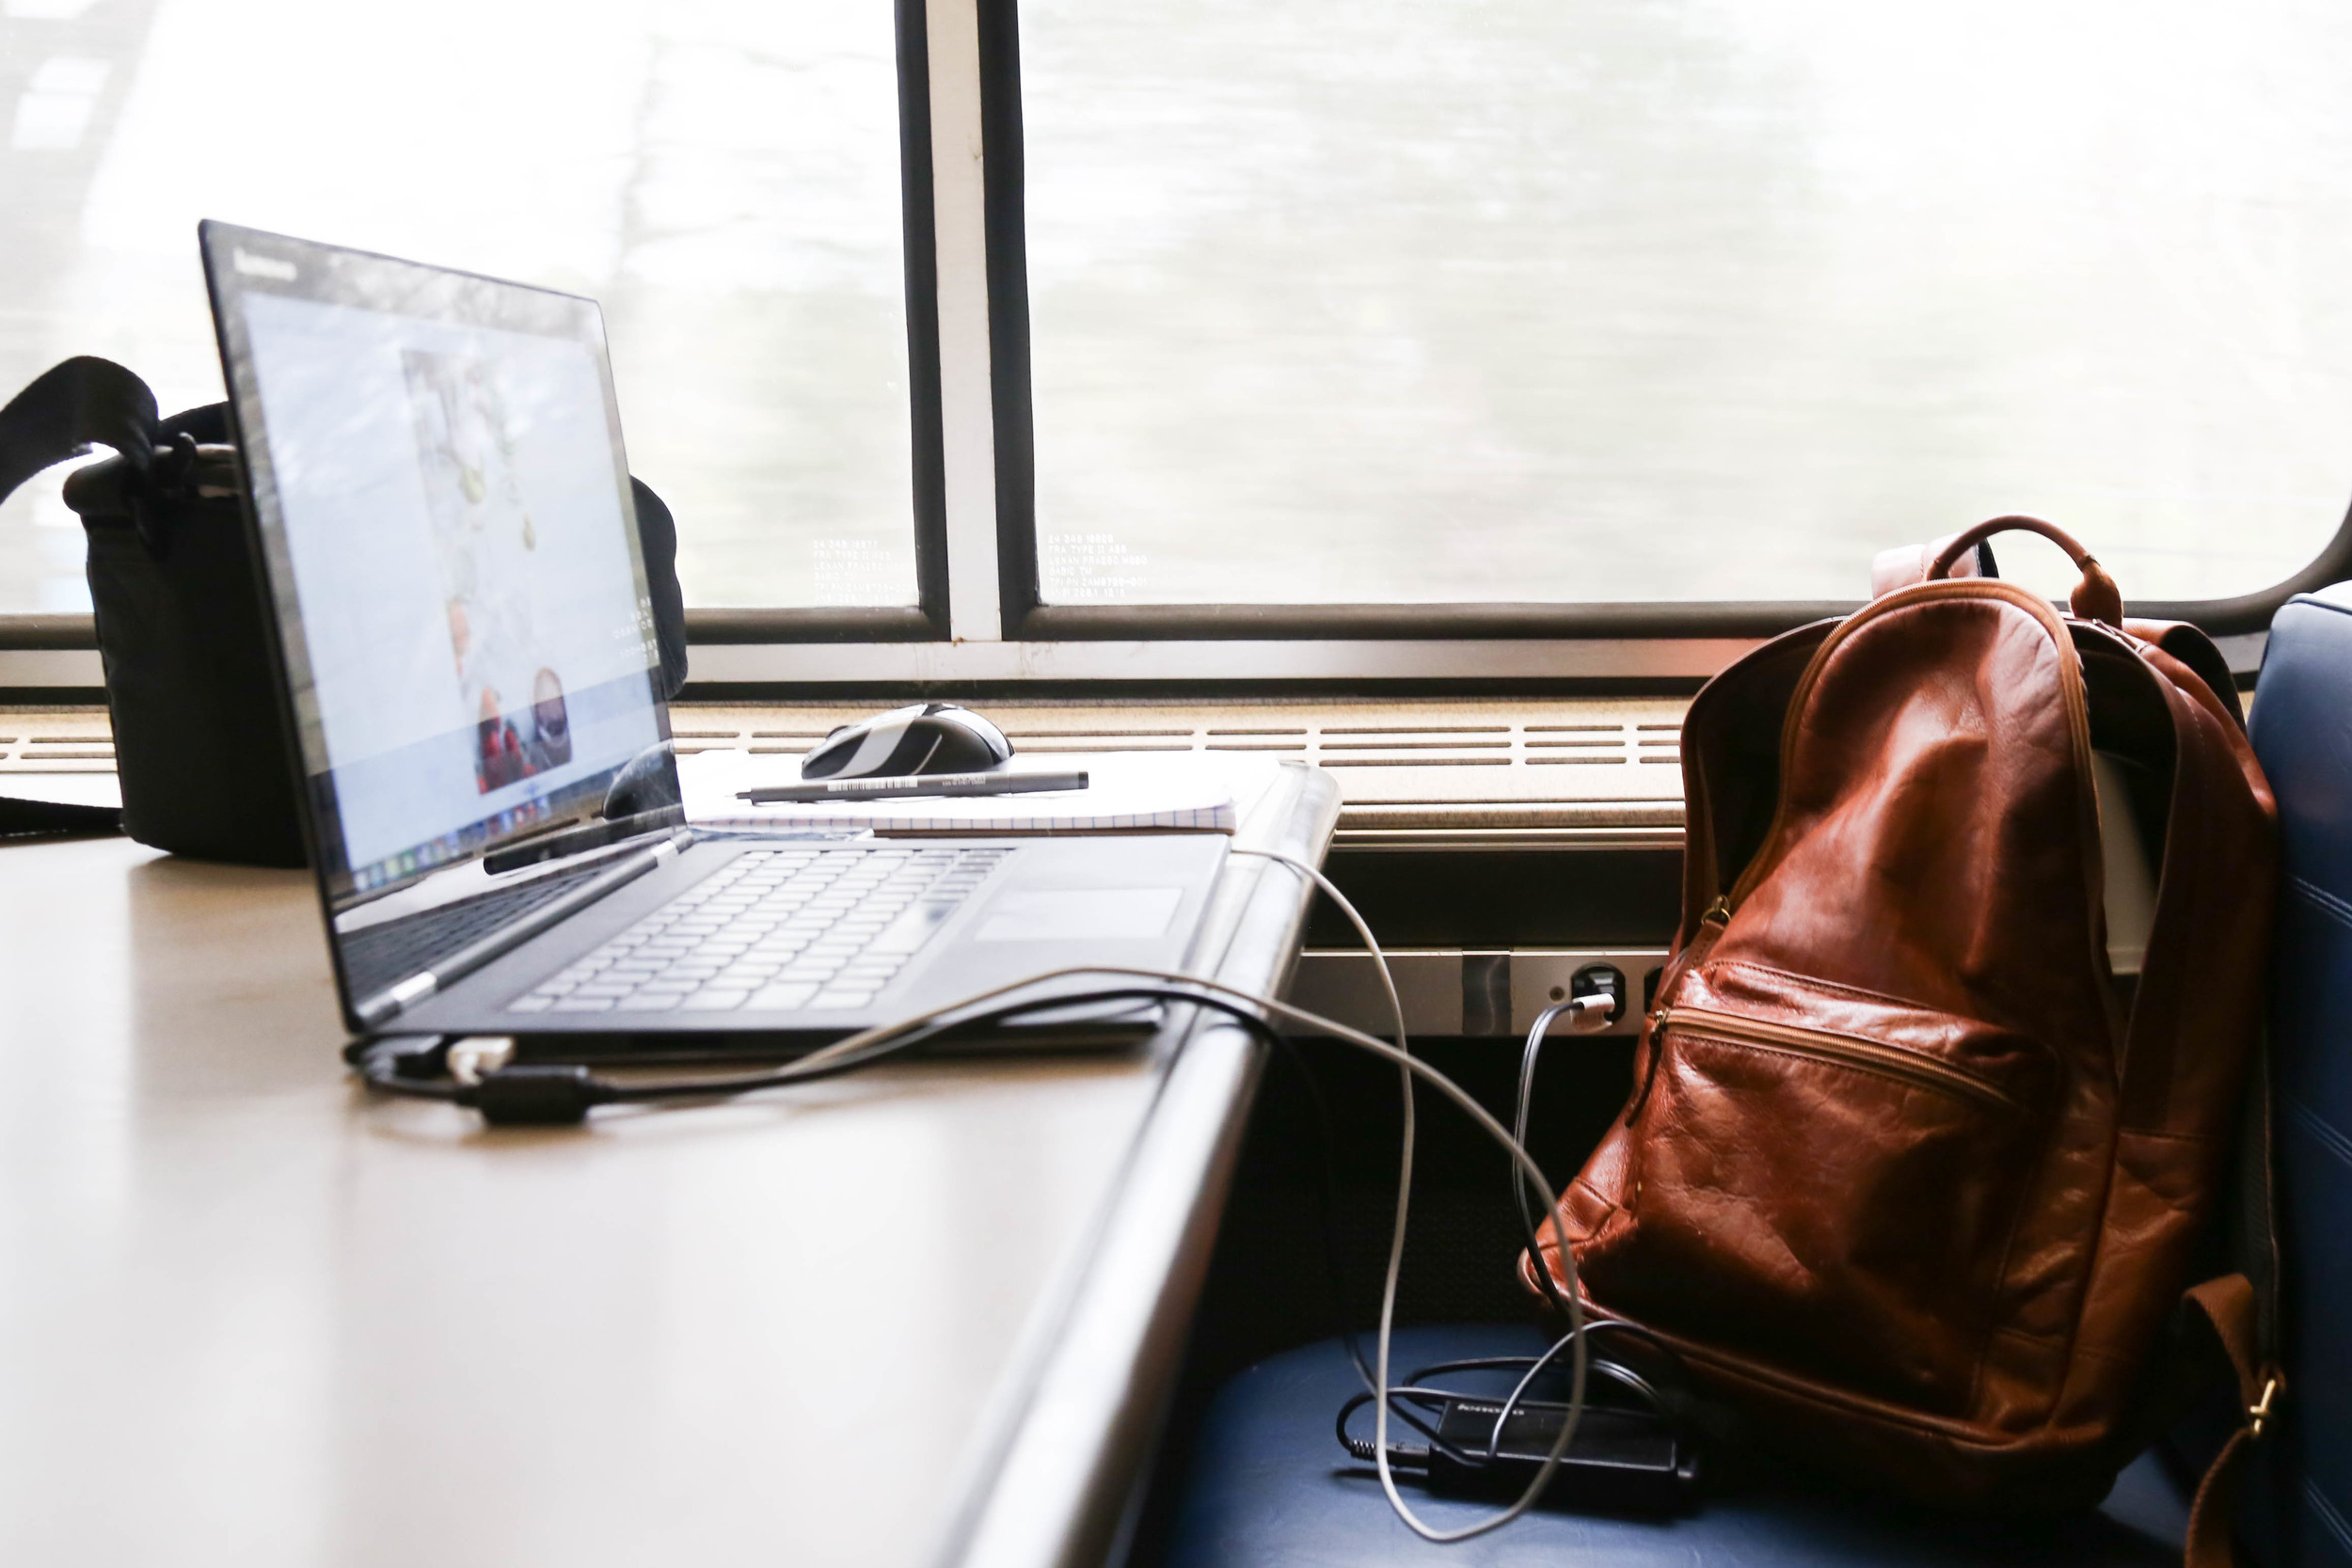 My makeshift office on the train!